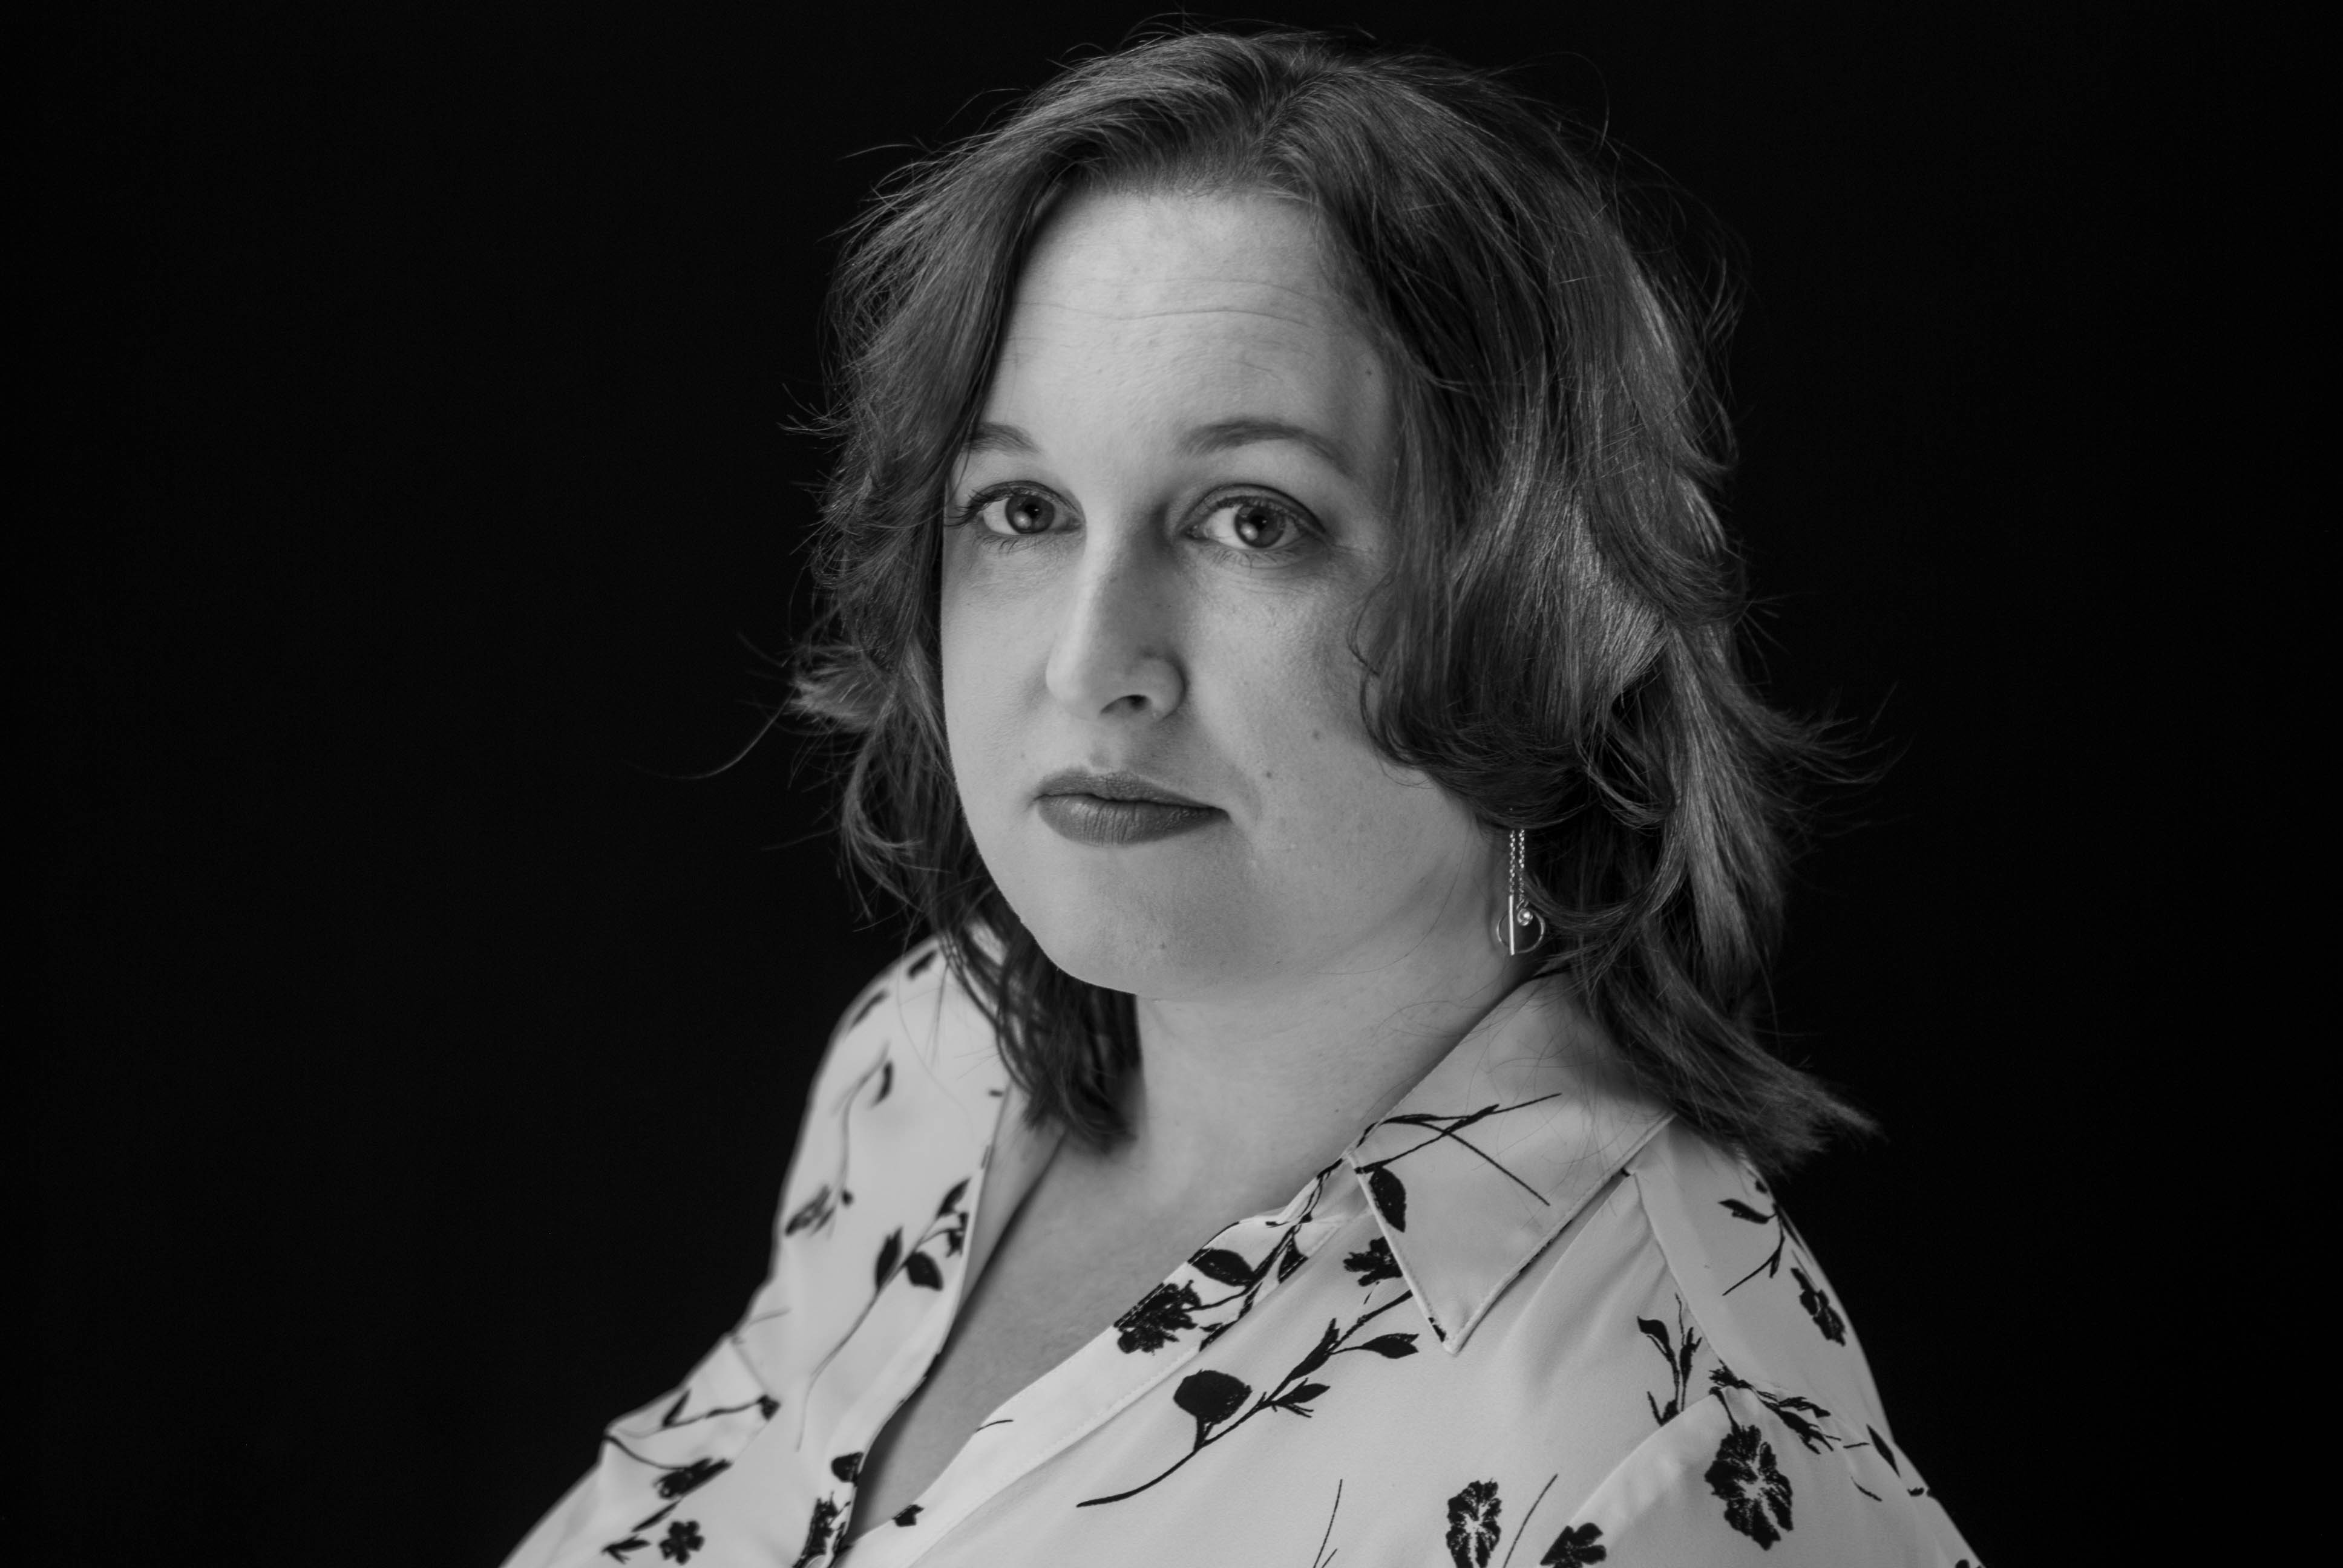 Mystery vs Suspense, Her Jon's Mysteries, and Tips for Aspiring Writers With AJ Sherwood